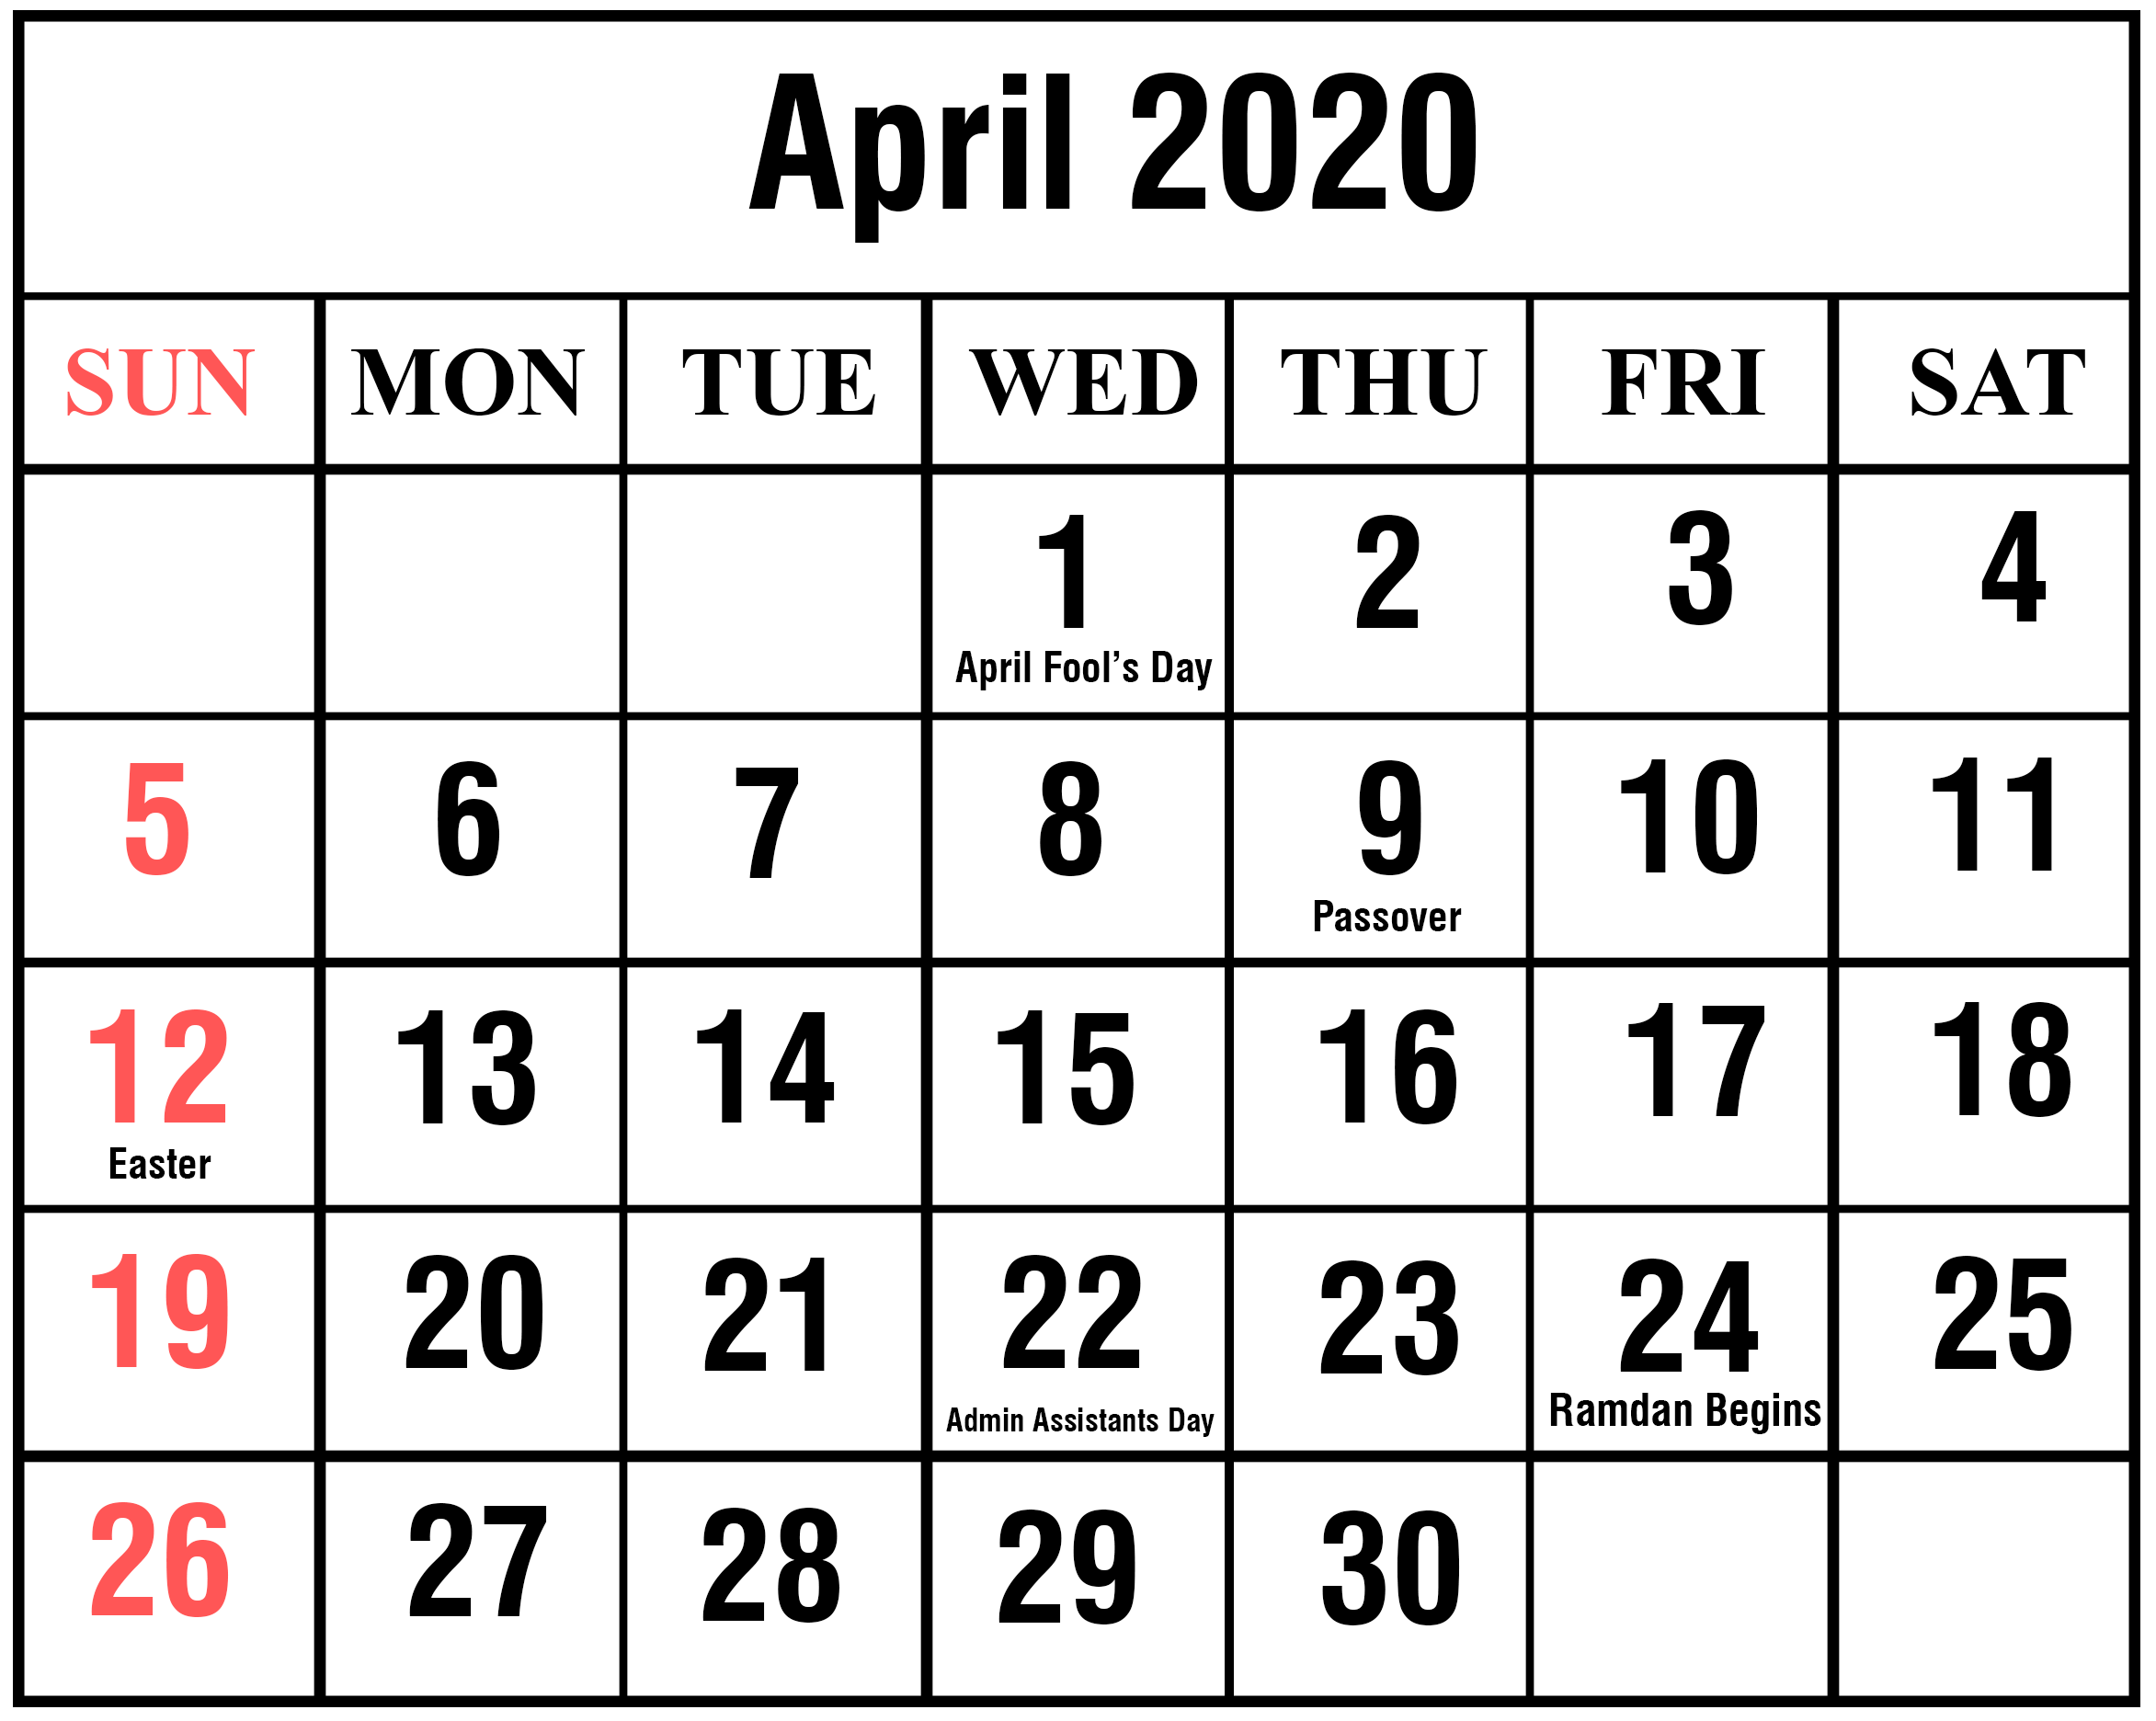 April 2020 Calendar With Holidays Australia